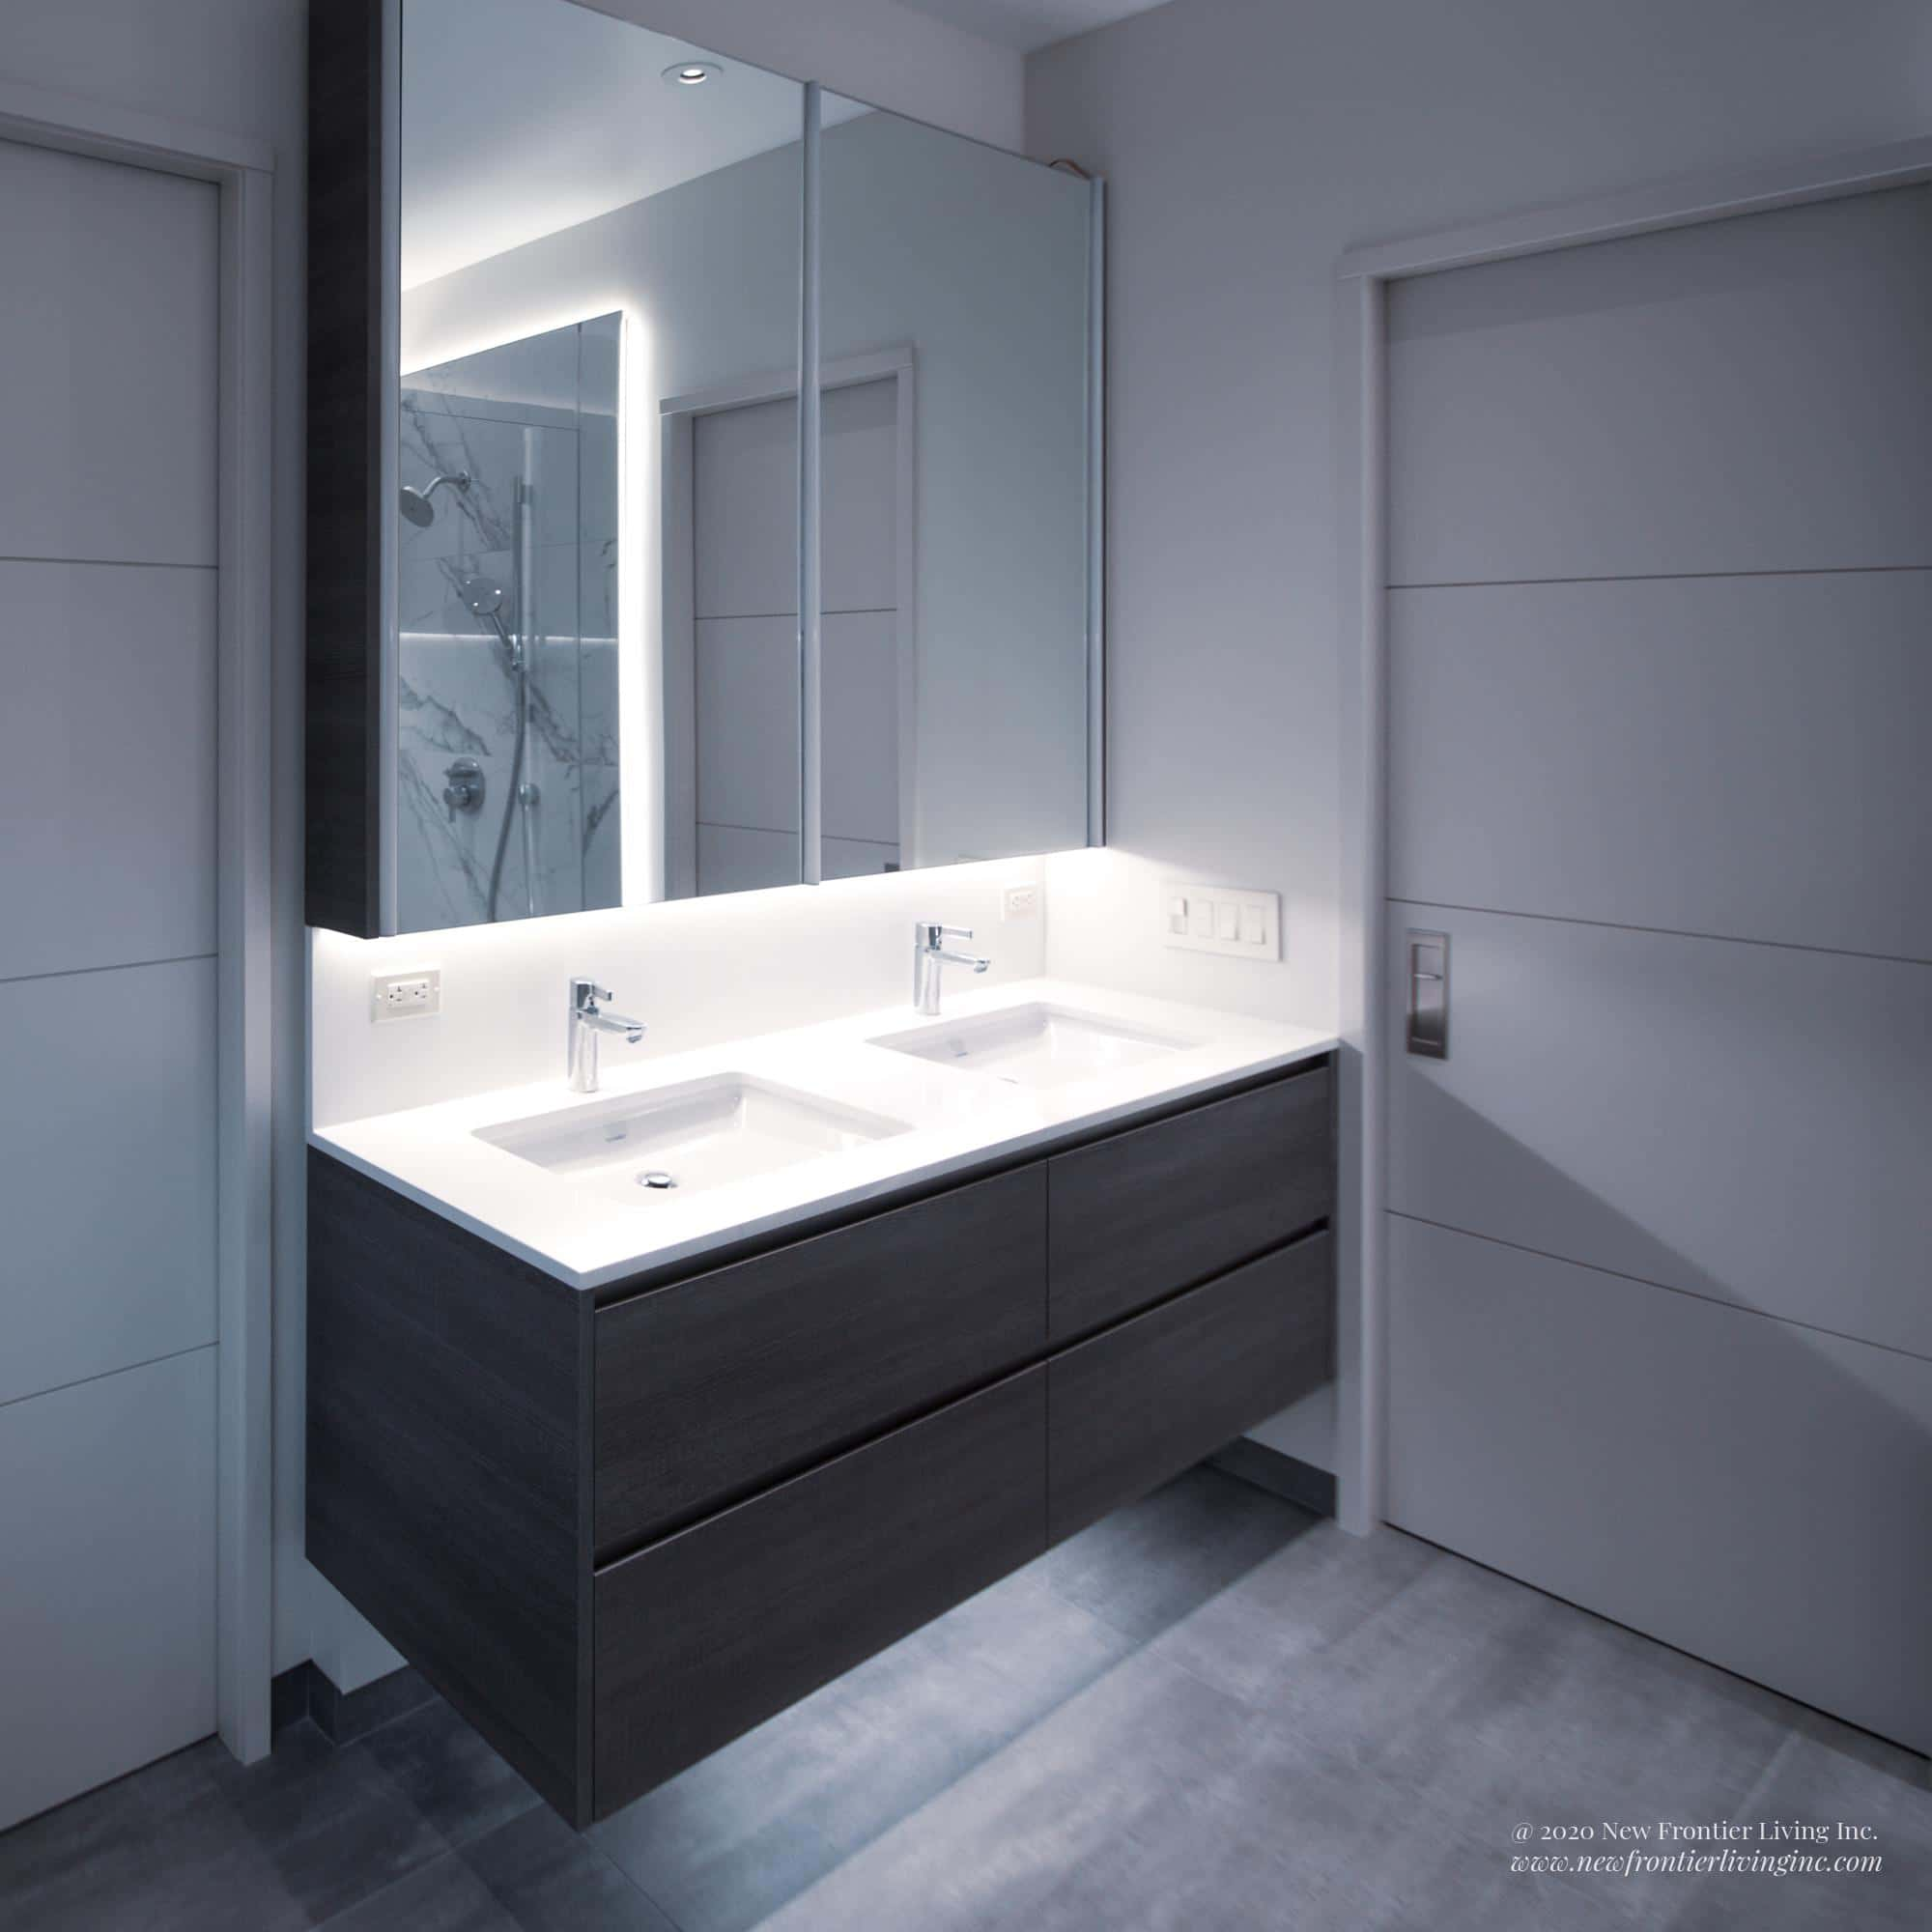 Gray bathroom hanging vanity with white countertop for double sink with big mirror and pocket doors